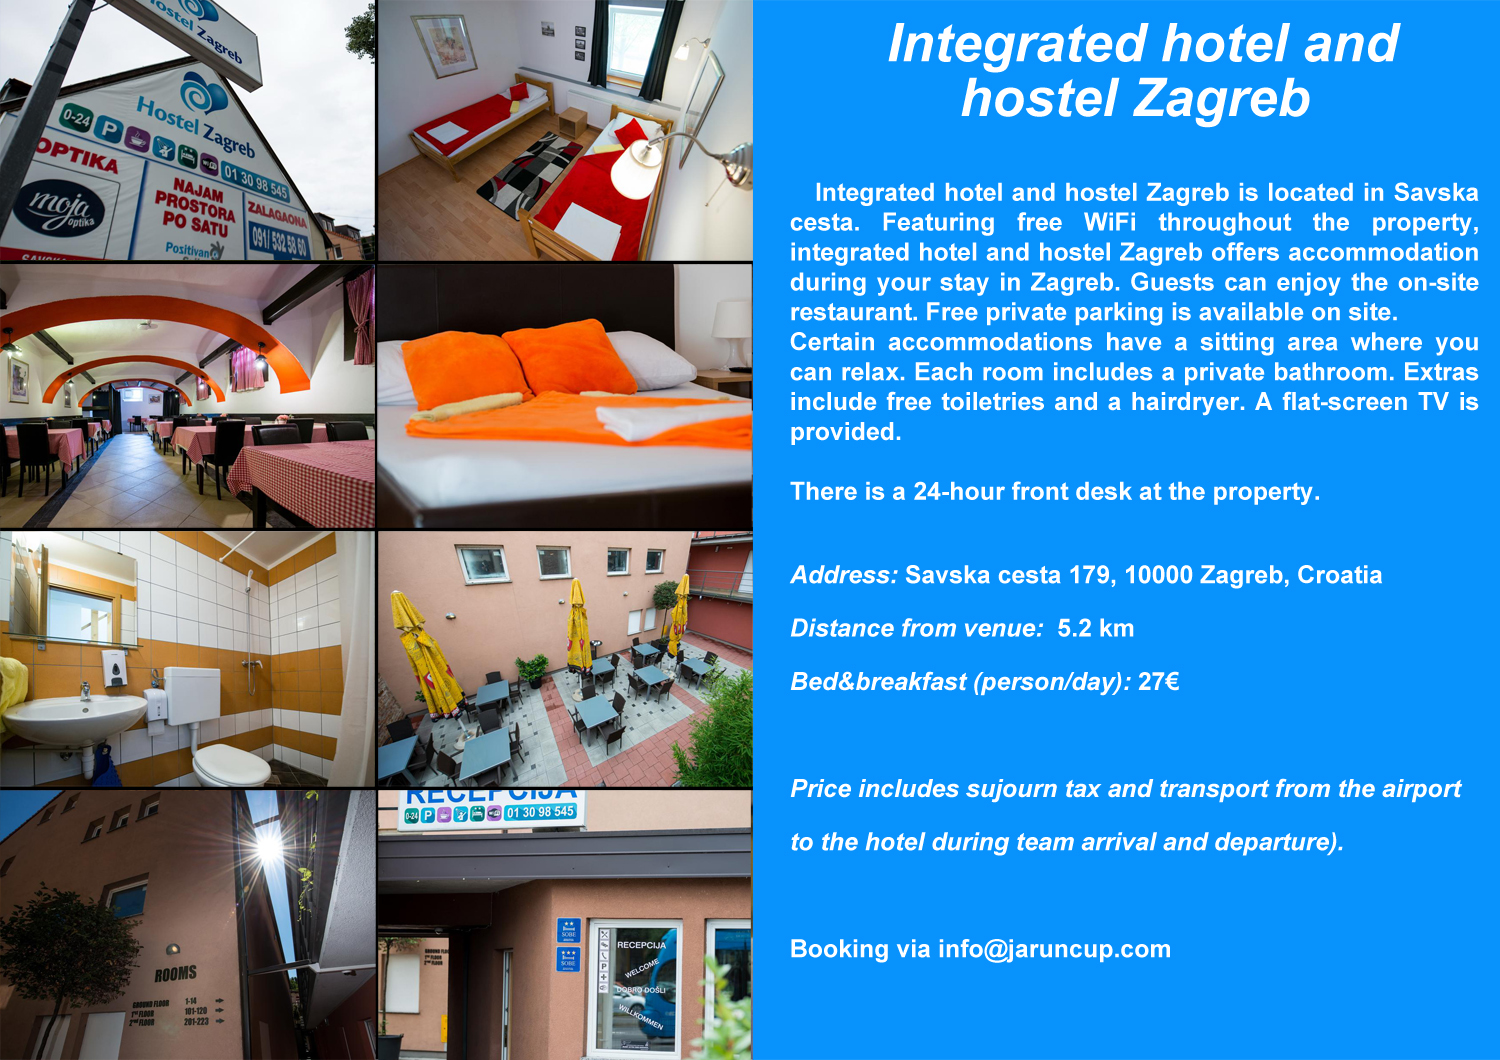 2020 Jarun cup hotel and hostel Zagreb small